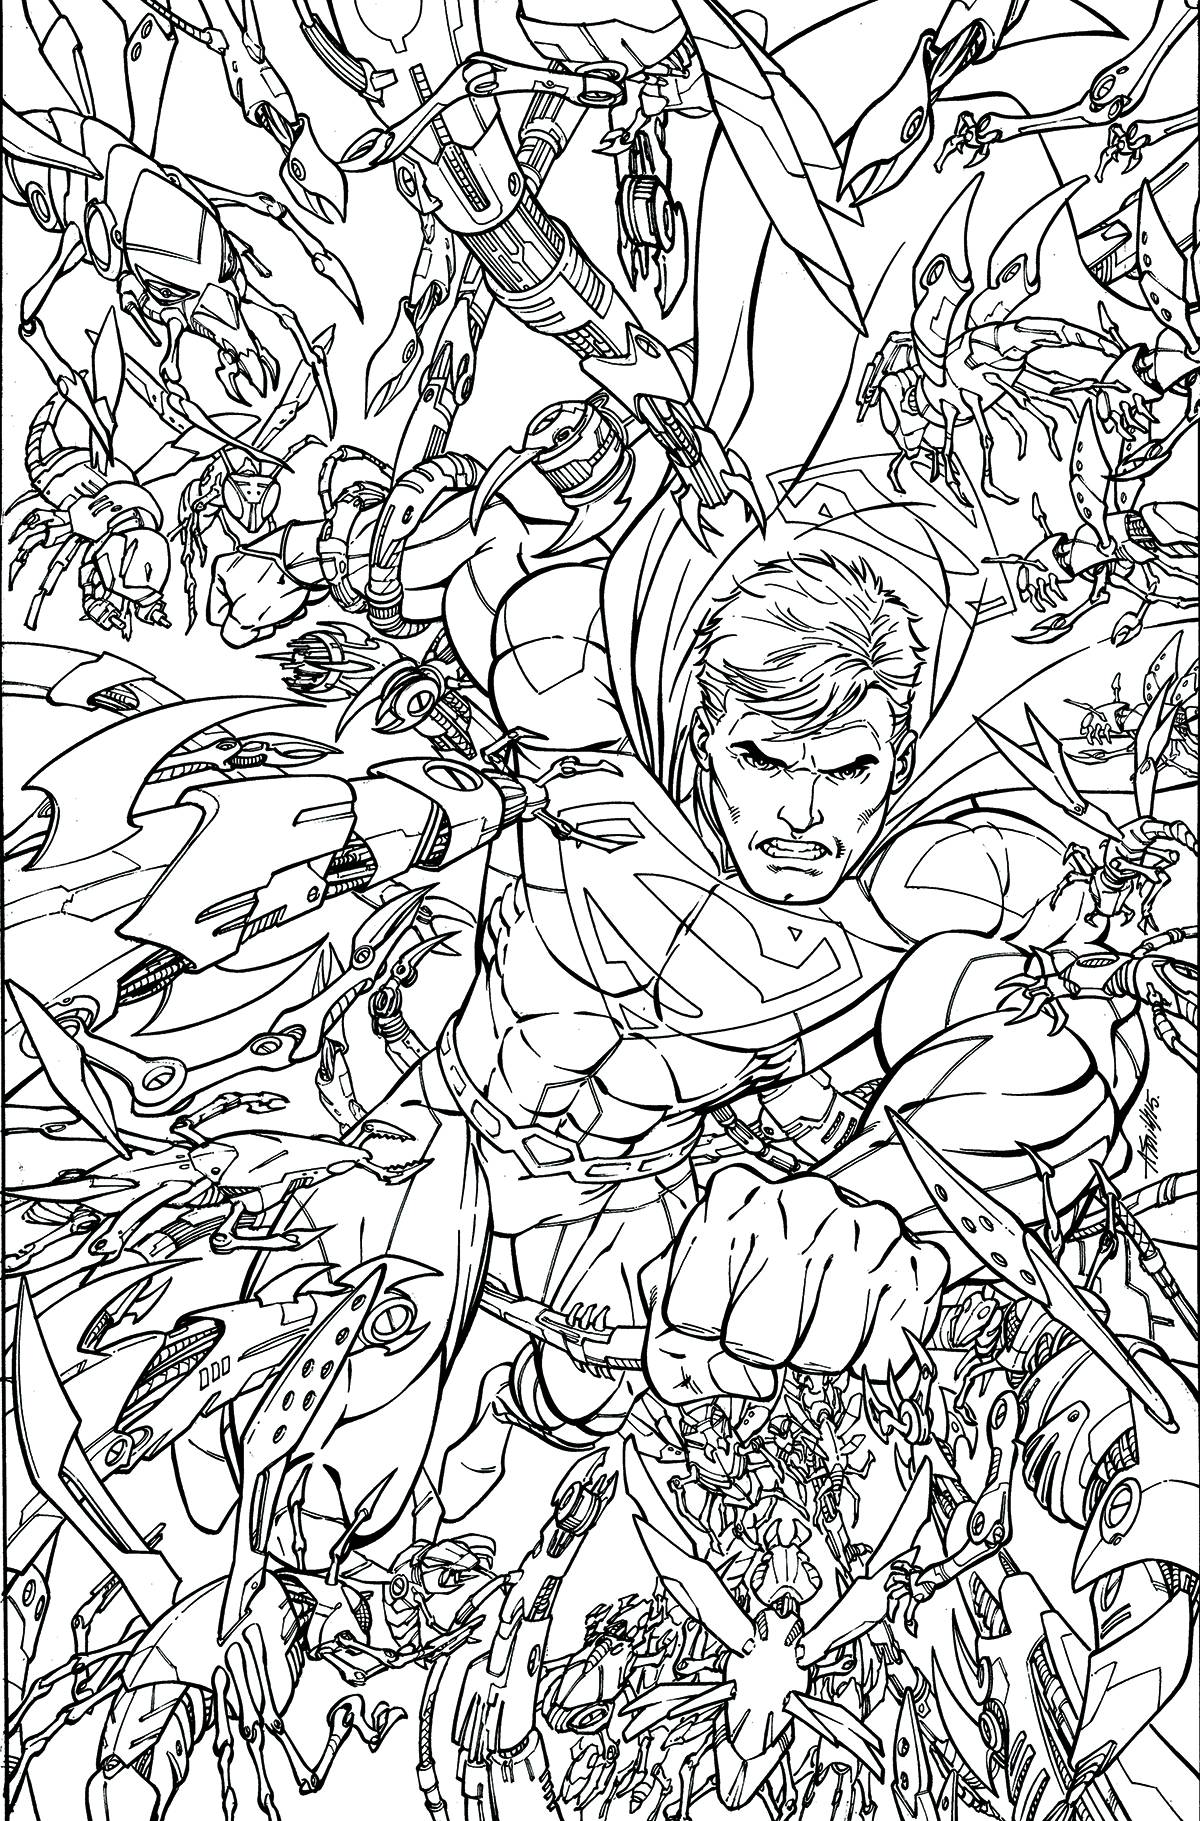 100 ideas Marvel ic Coloring Pages on gerardduchemann